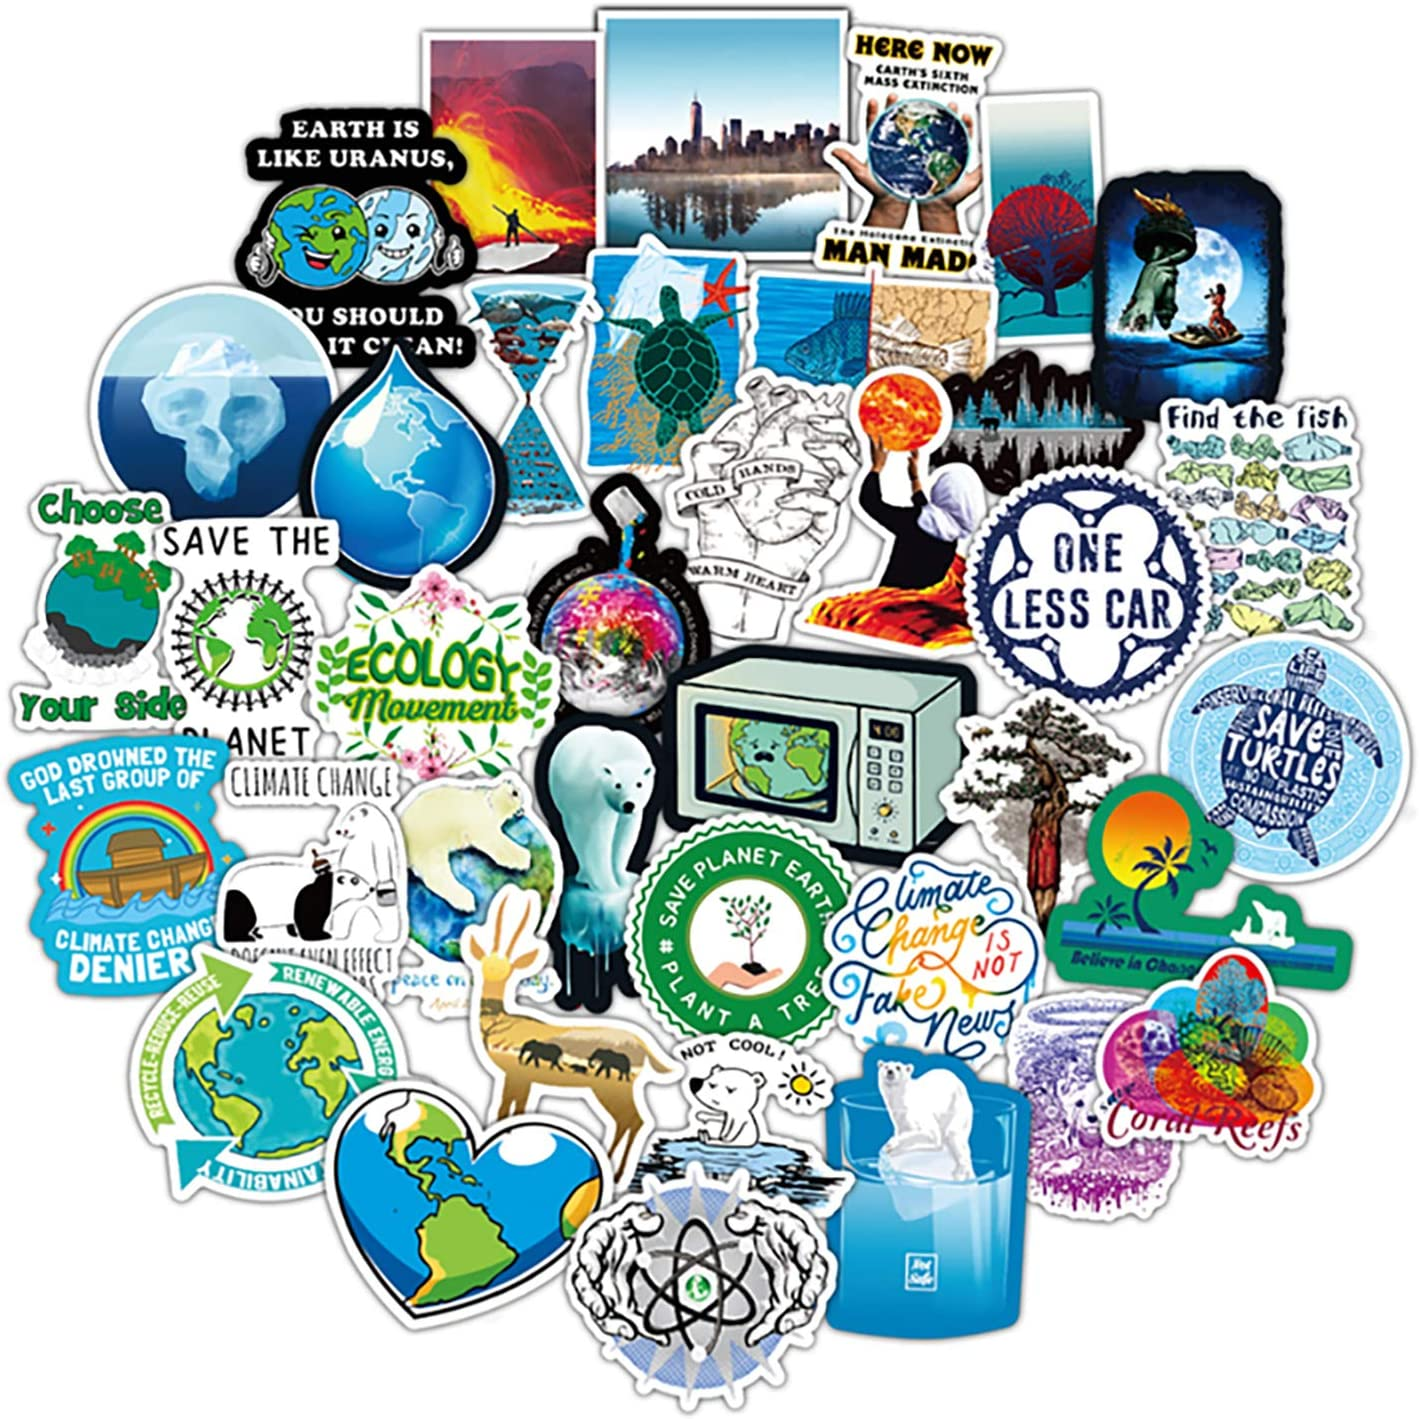 50 Pcs Climate Change Stickers Global Warming Decals for Water Bottle Hydro Flask Laptop Luggage Car Bike Bicycle Waterproof Vinyl Earth Stickers Environmental Protection Stickers Pack